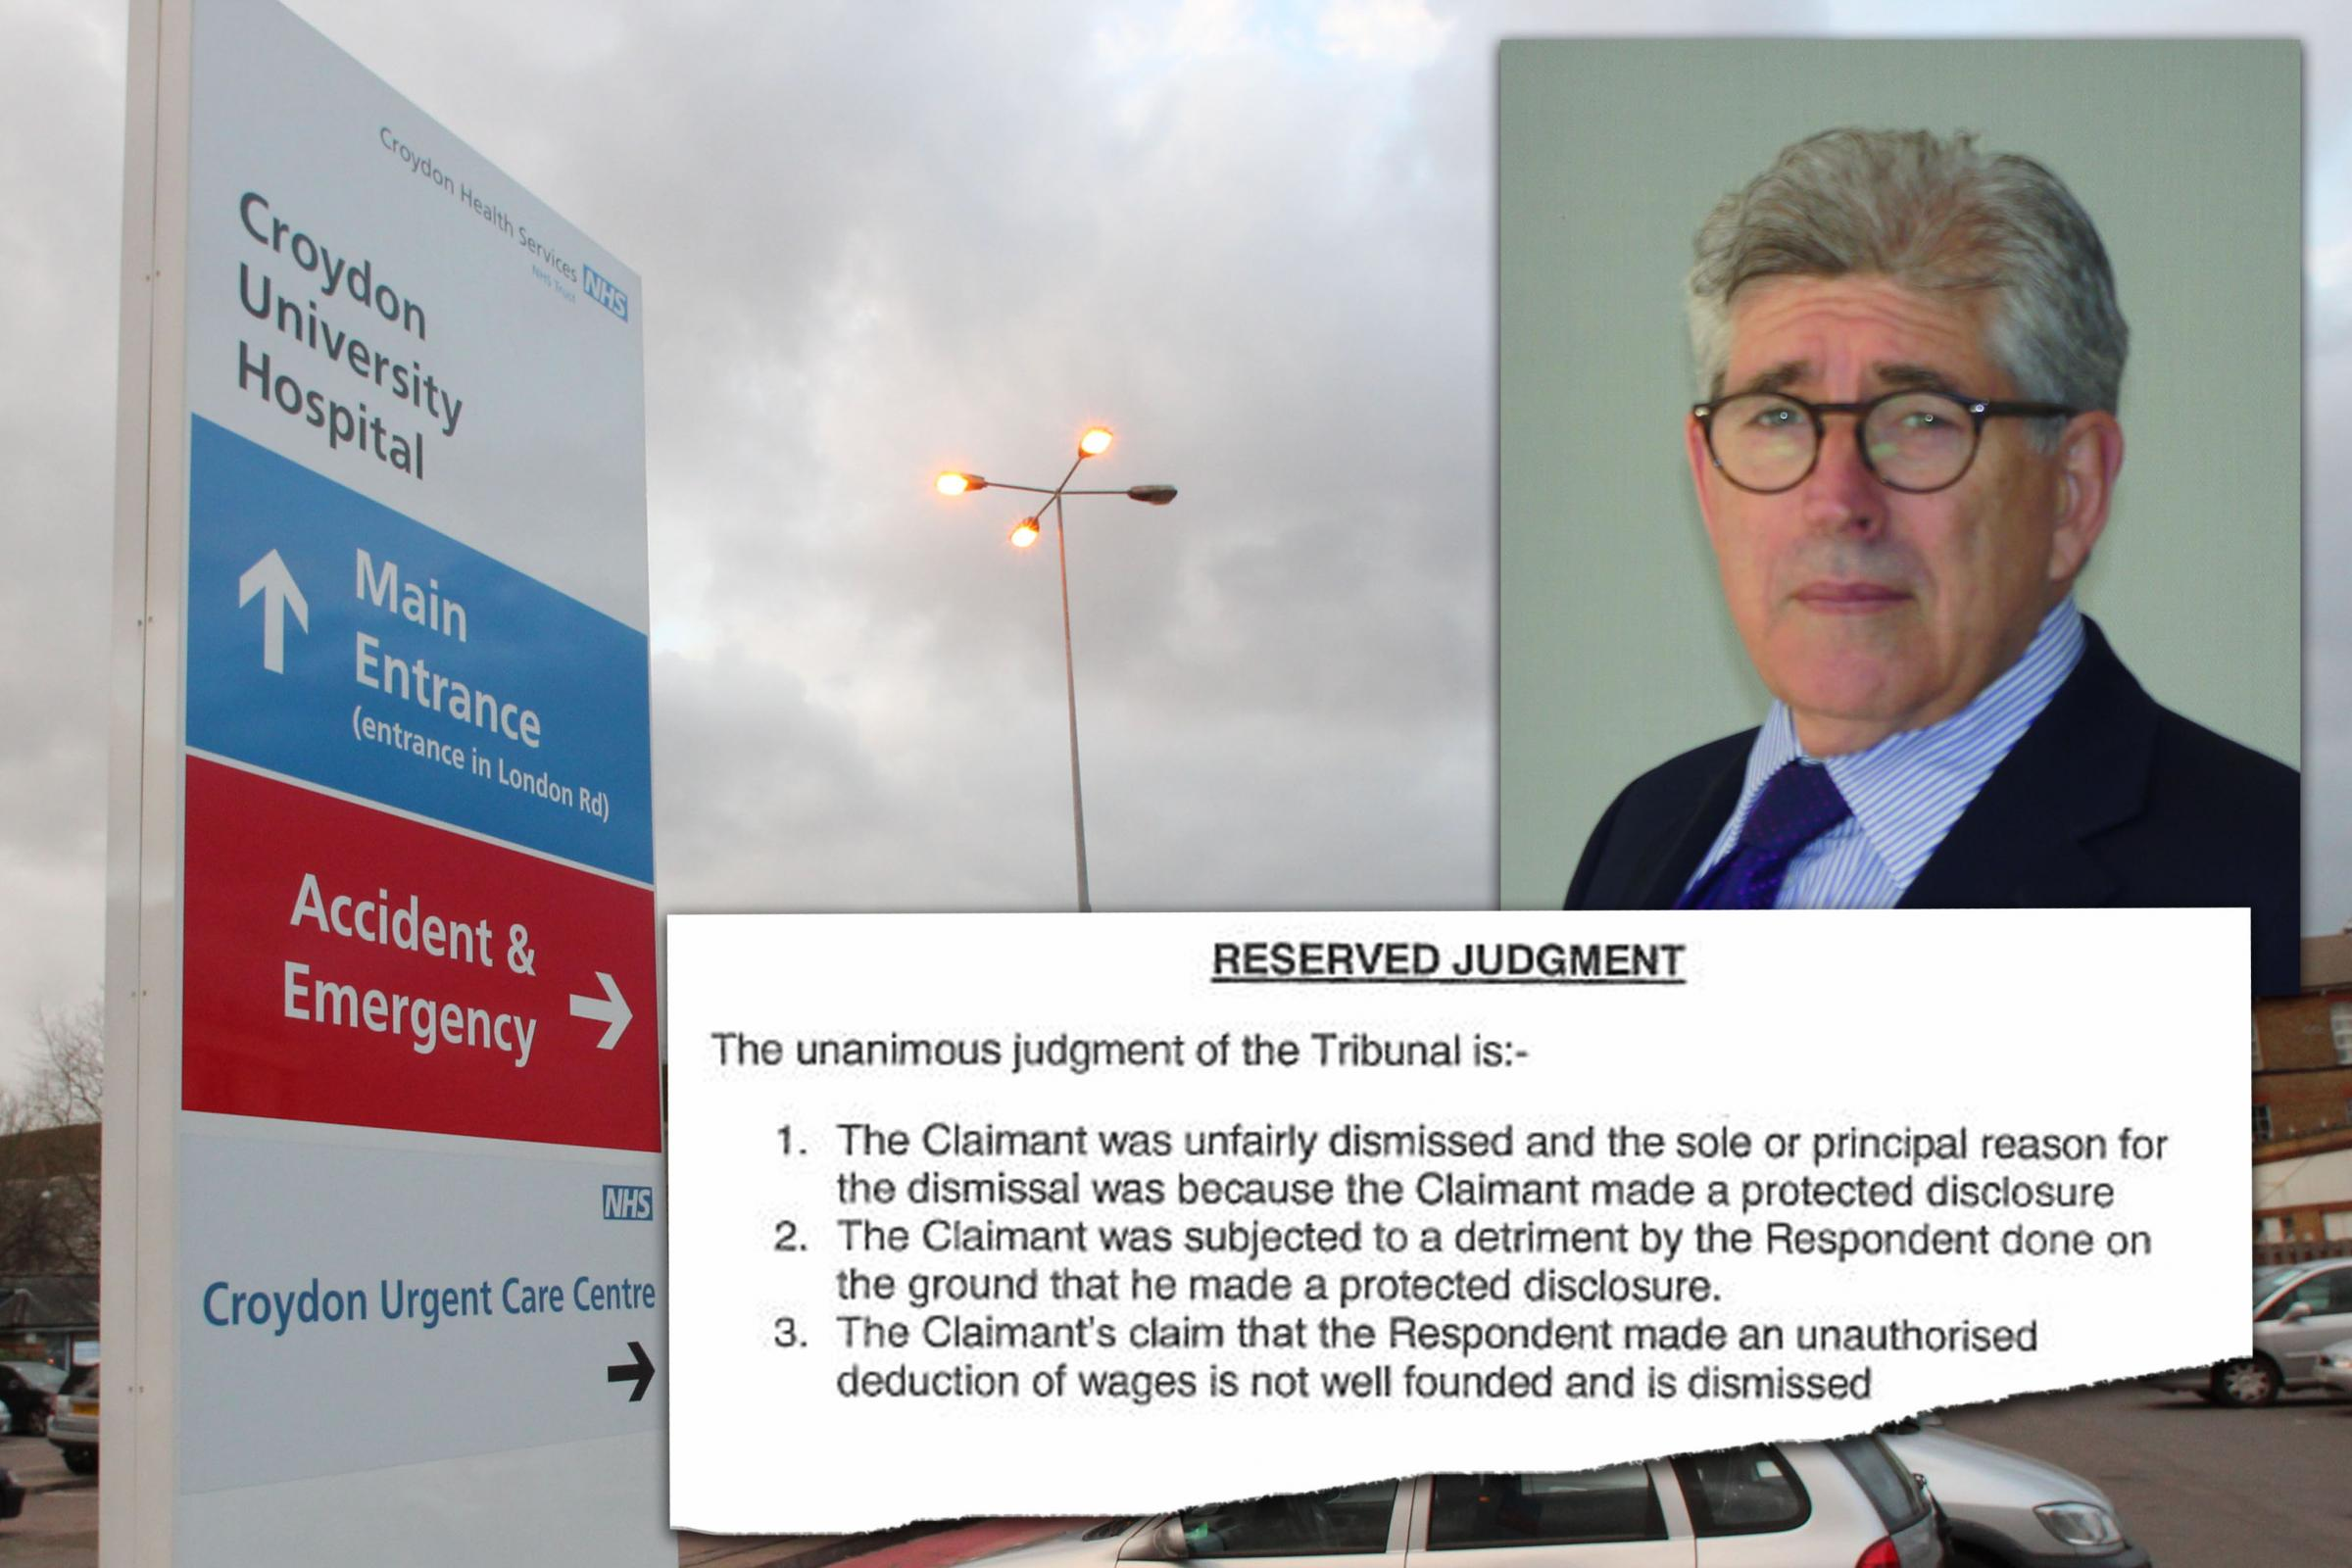 An employment tribunal ruled Kevin Beatt was wrongly sacked for whistleblowing